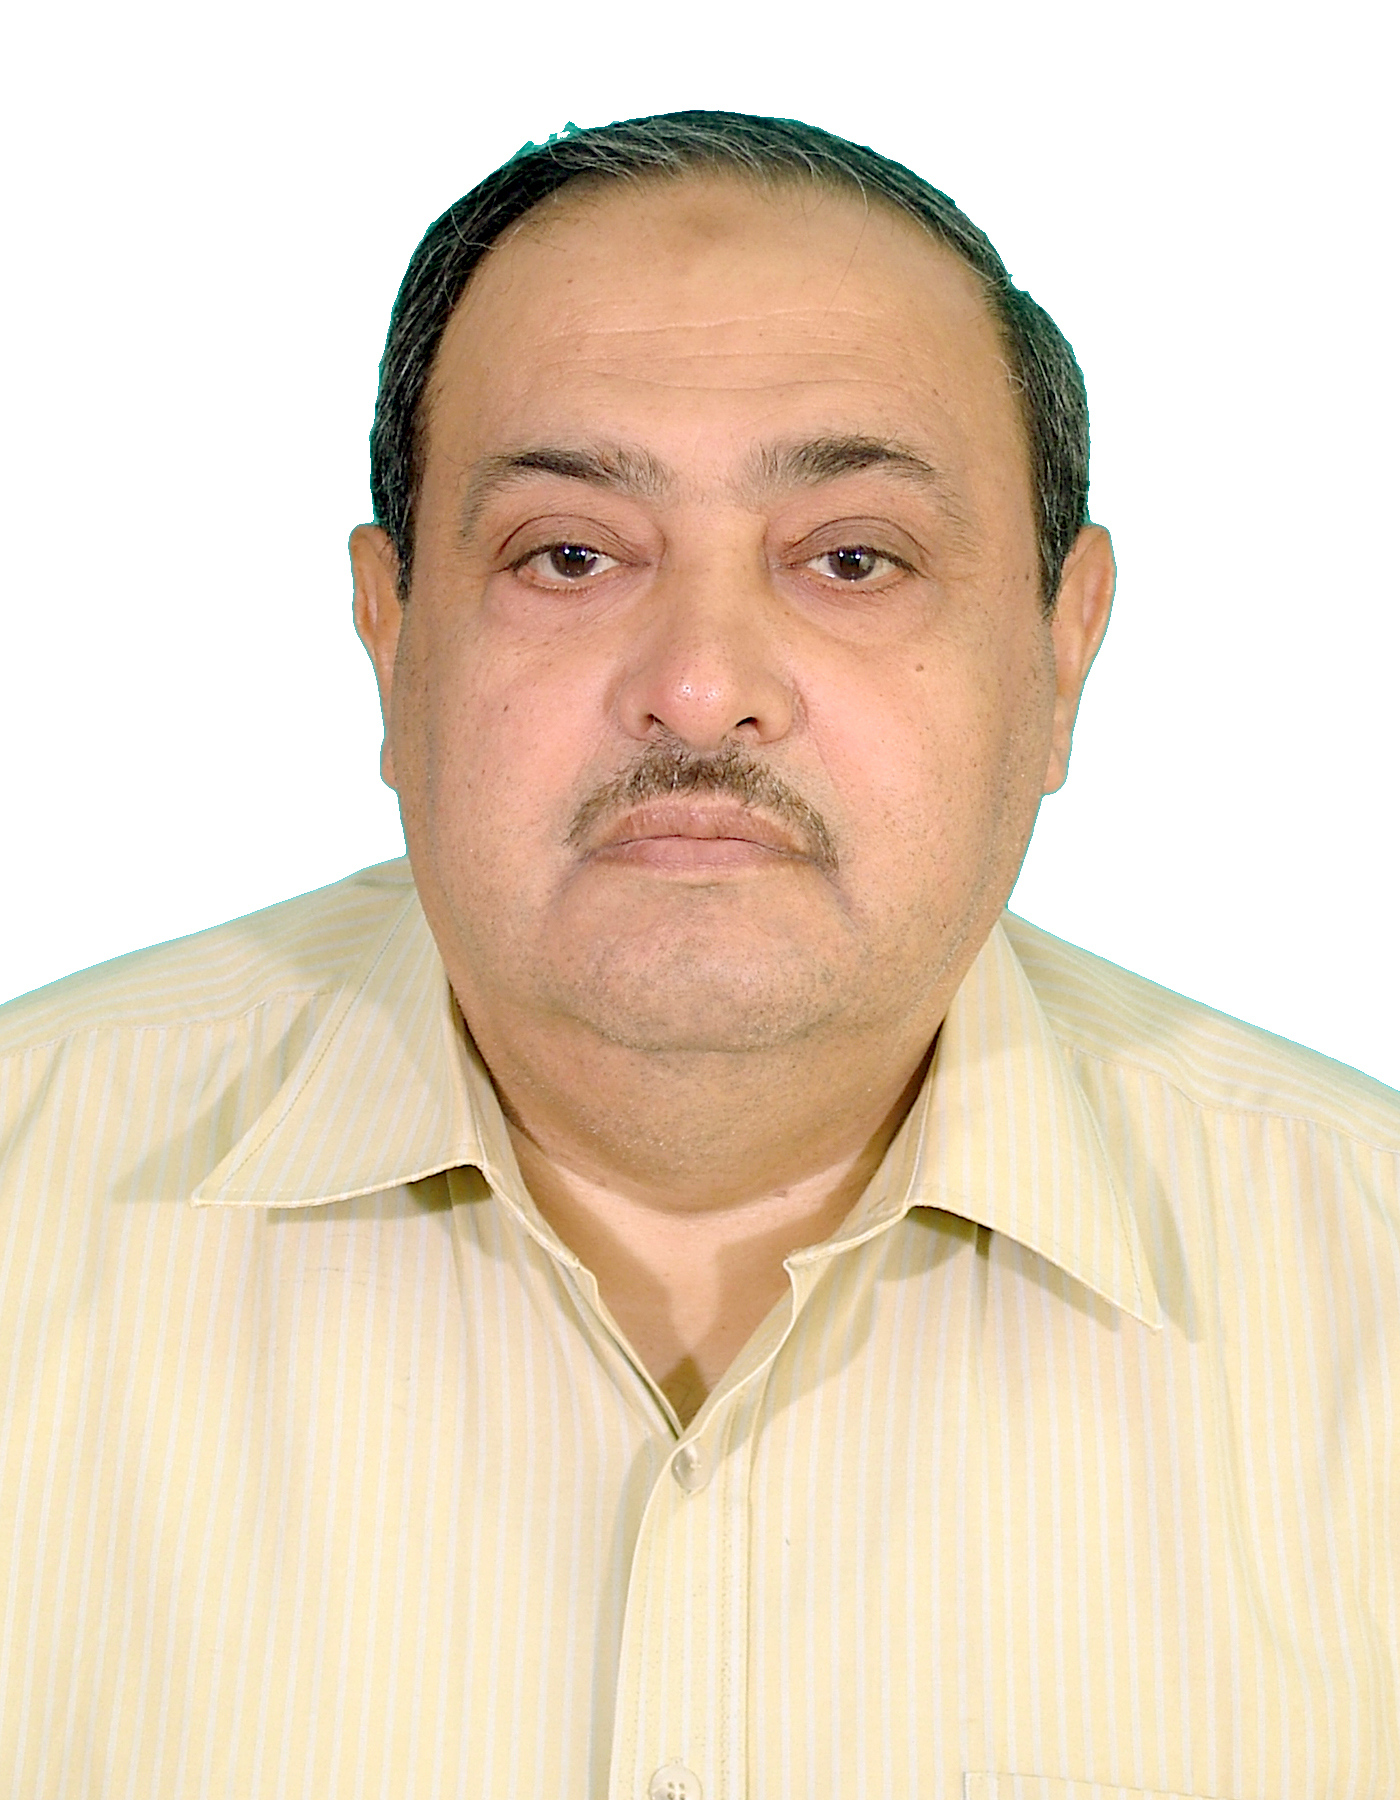 Dr. Ahmed Halo